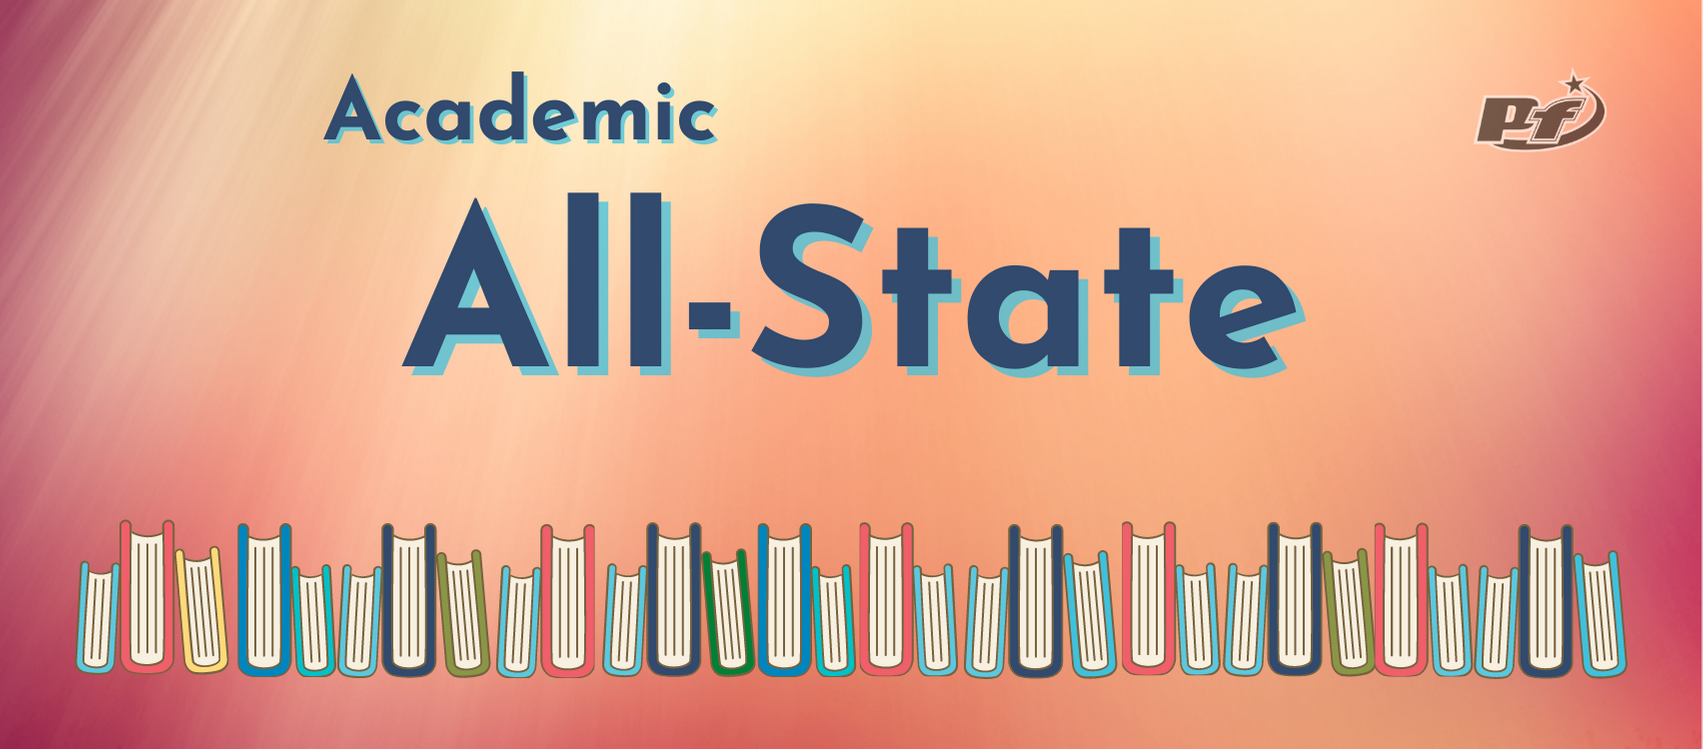 Academic All-State